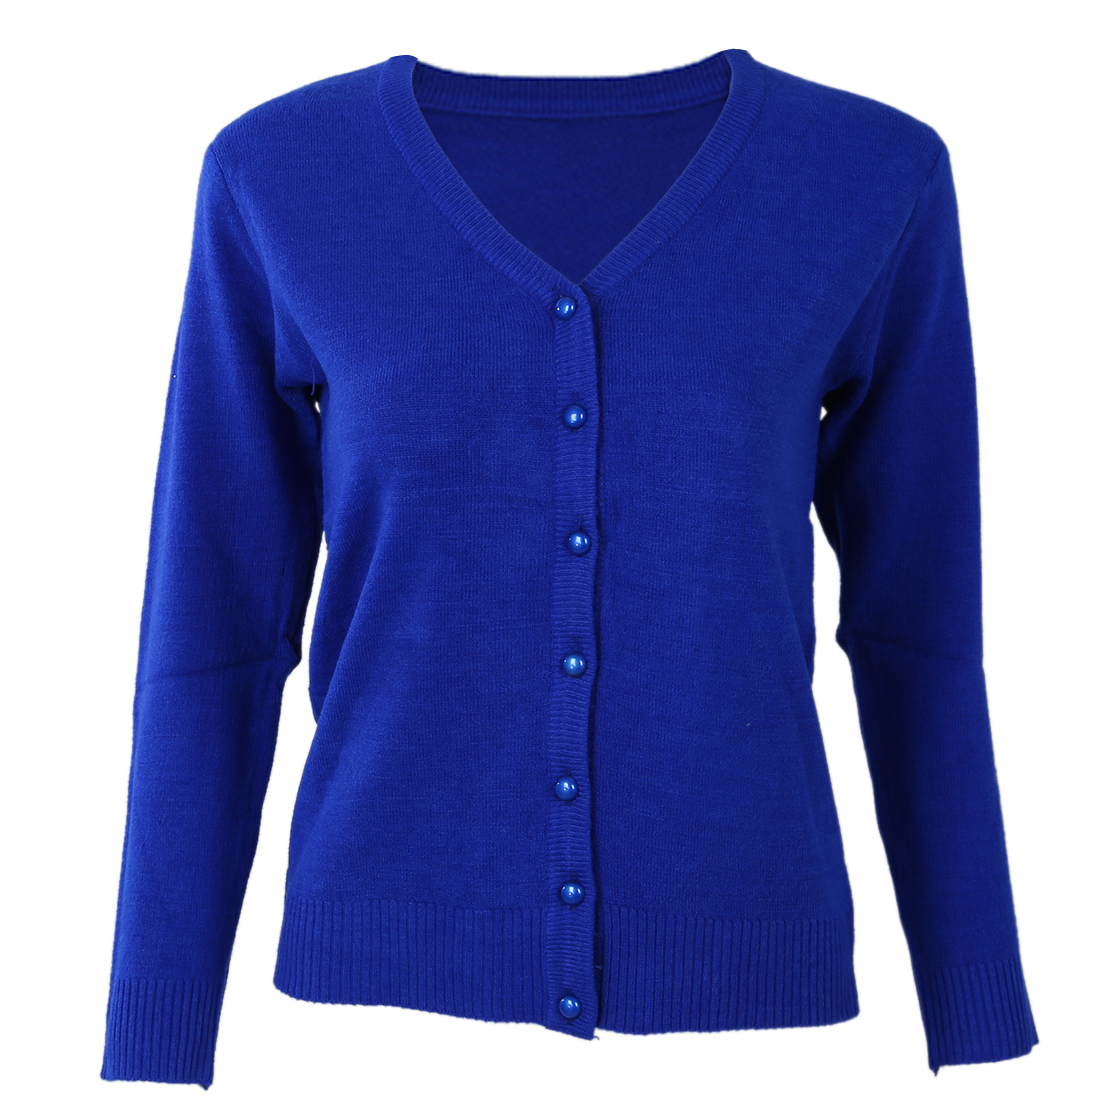 Shop the best selection of uniquely stylish women's pullover, poncho and cardigan sweaters at vanduload.tk Everyday free shipping and returns, no minimum.